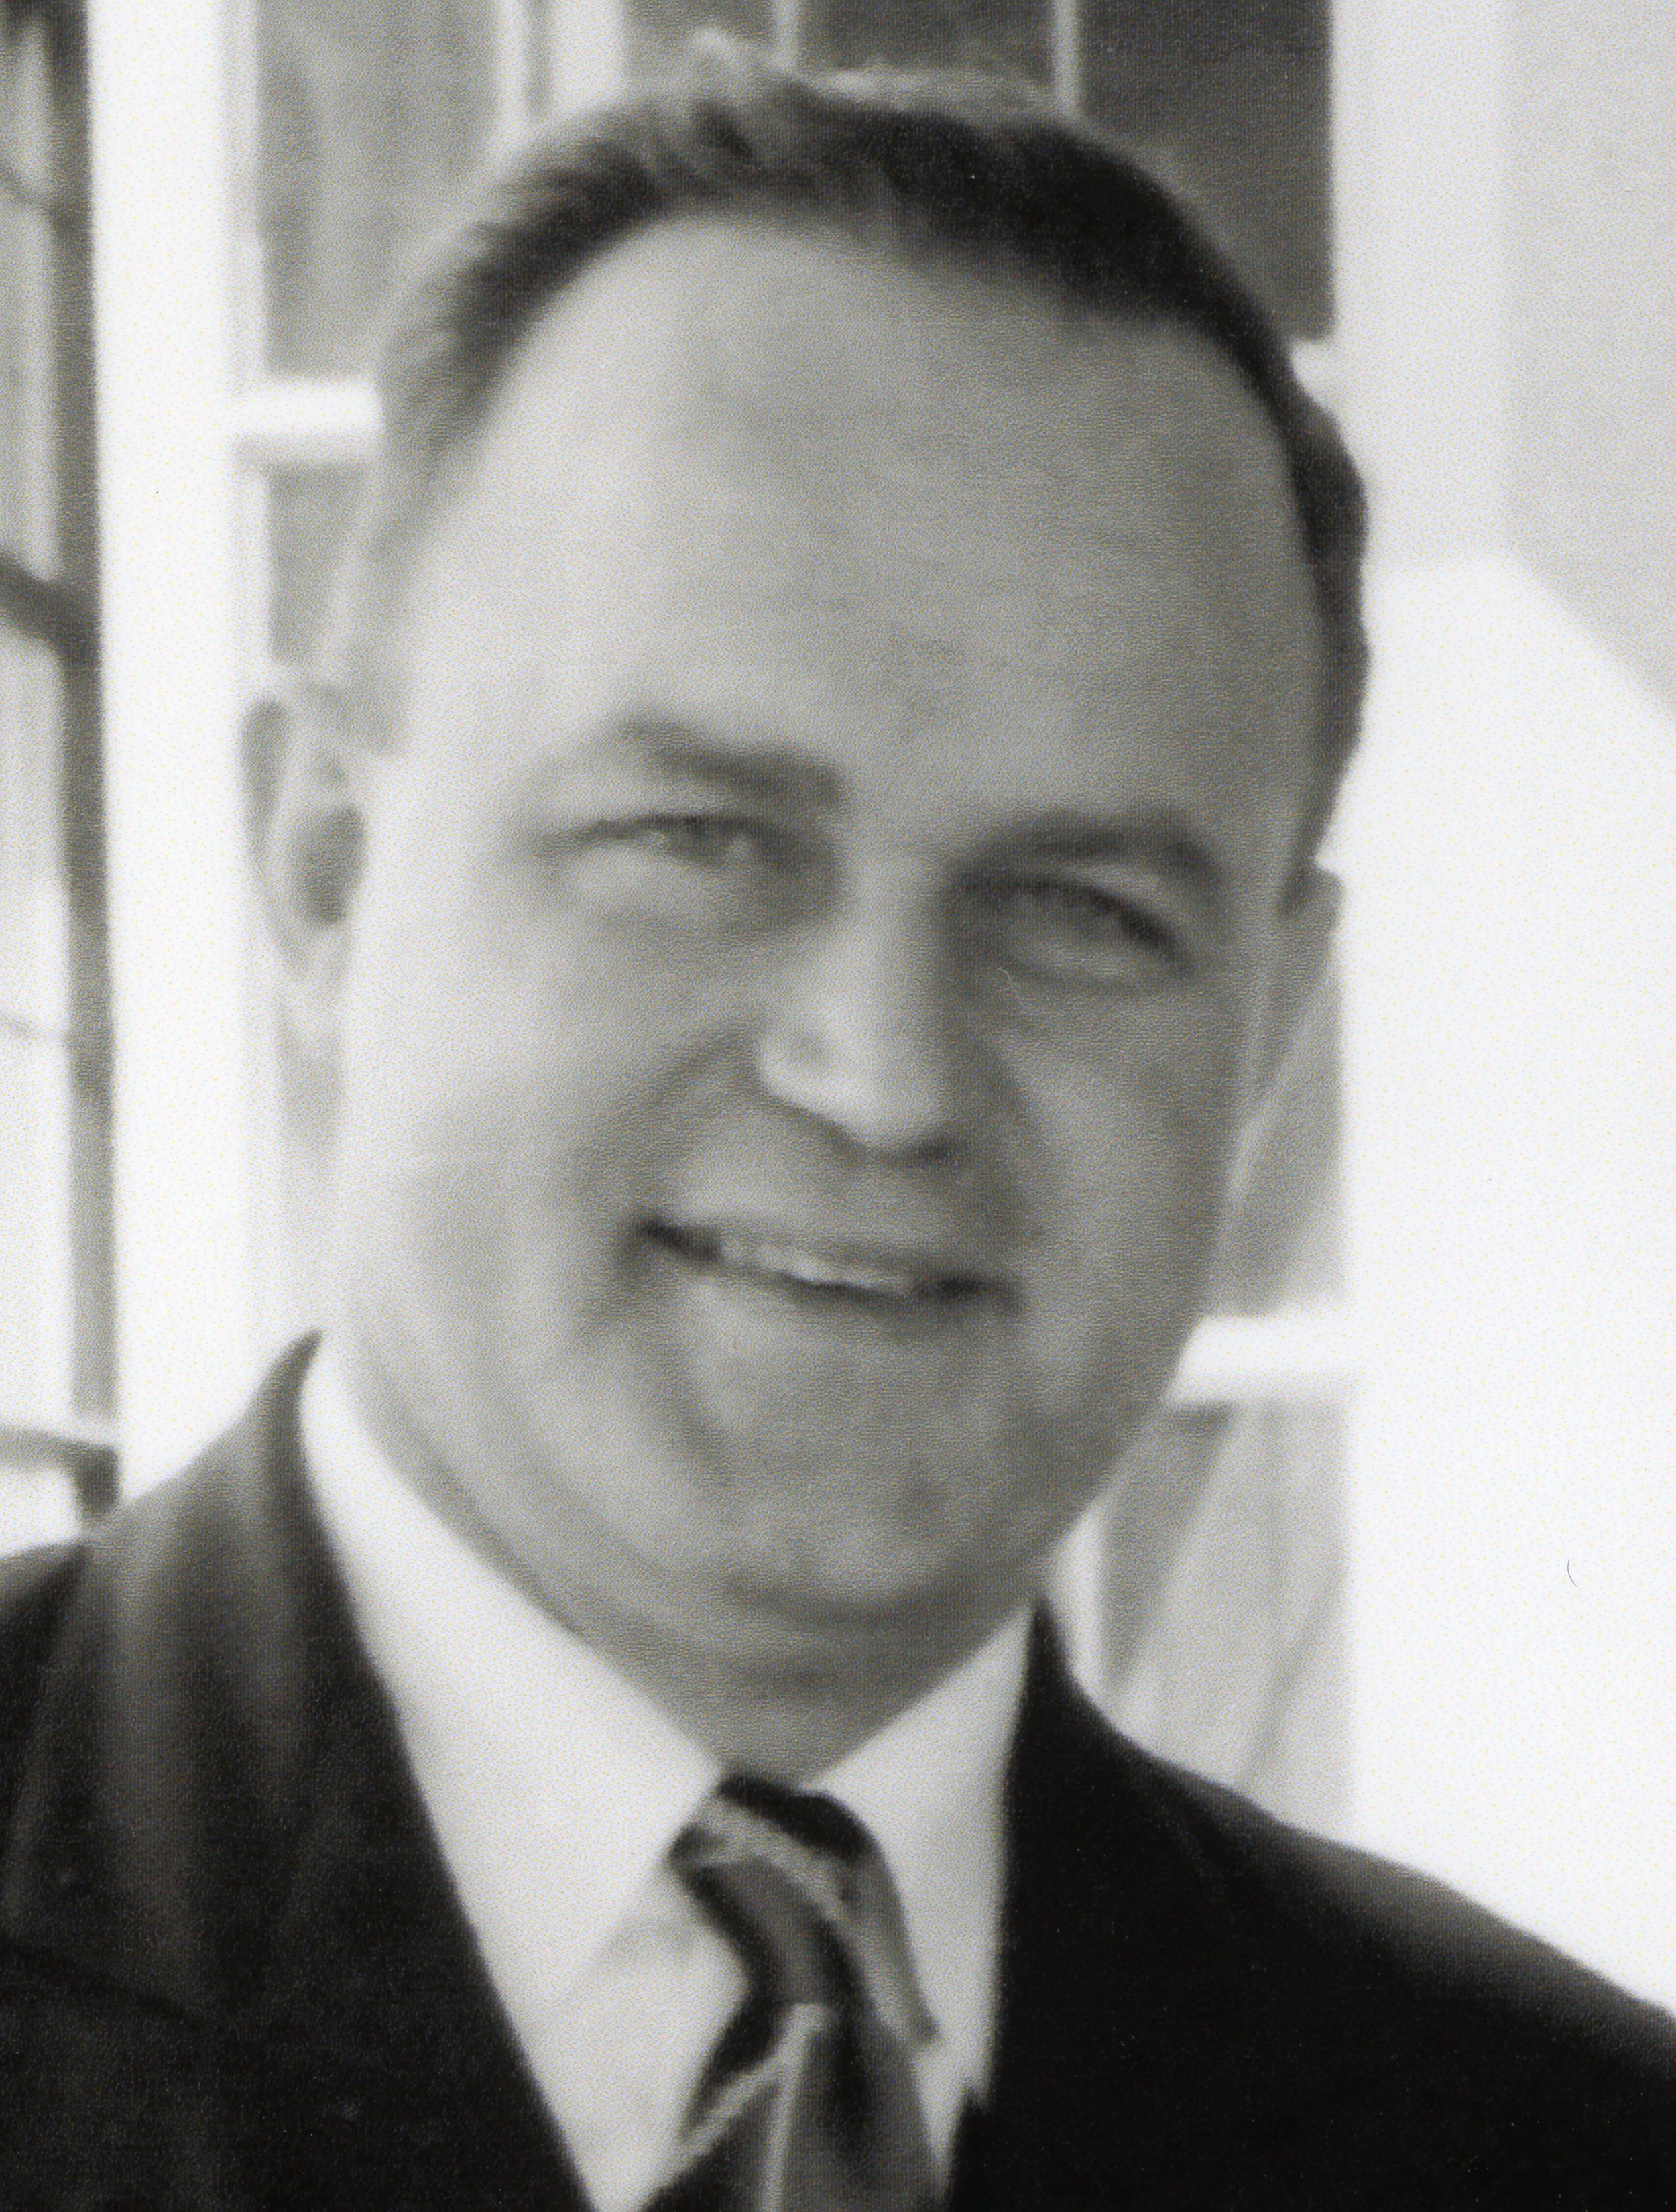 William Engel (1914 - 1993) was well known for his involvement with many deaf organisations, including the Deaf Society, the Australian Association of Workers with the Deaf, the Australian Deaf Sports Federation, and the Australian Federation of Deaf Societies.  Read more ...